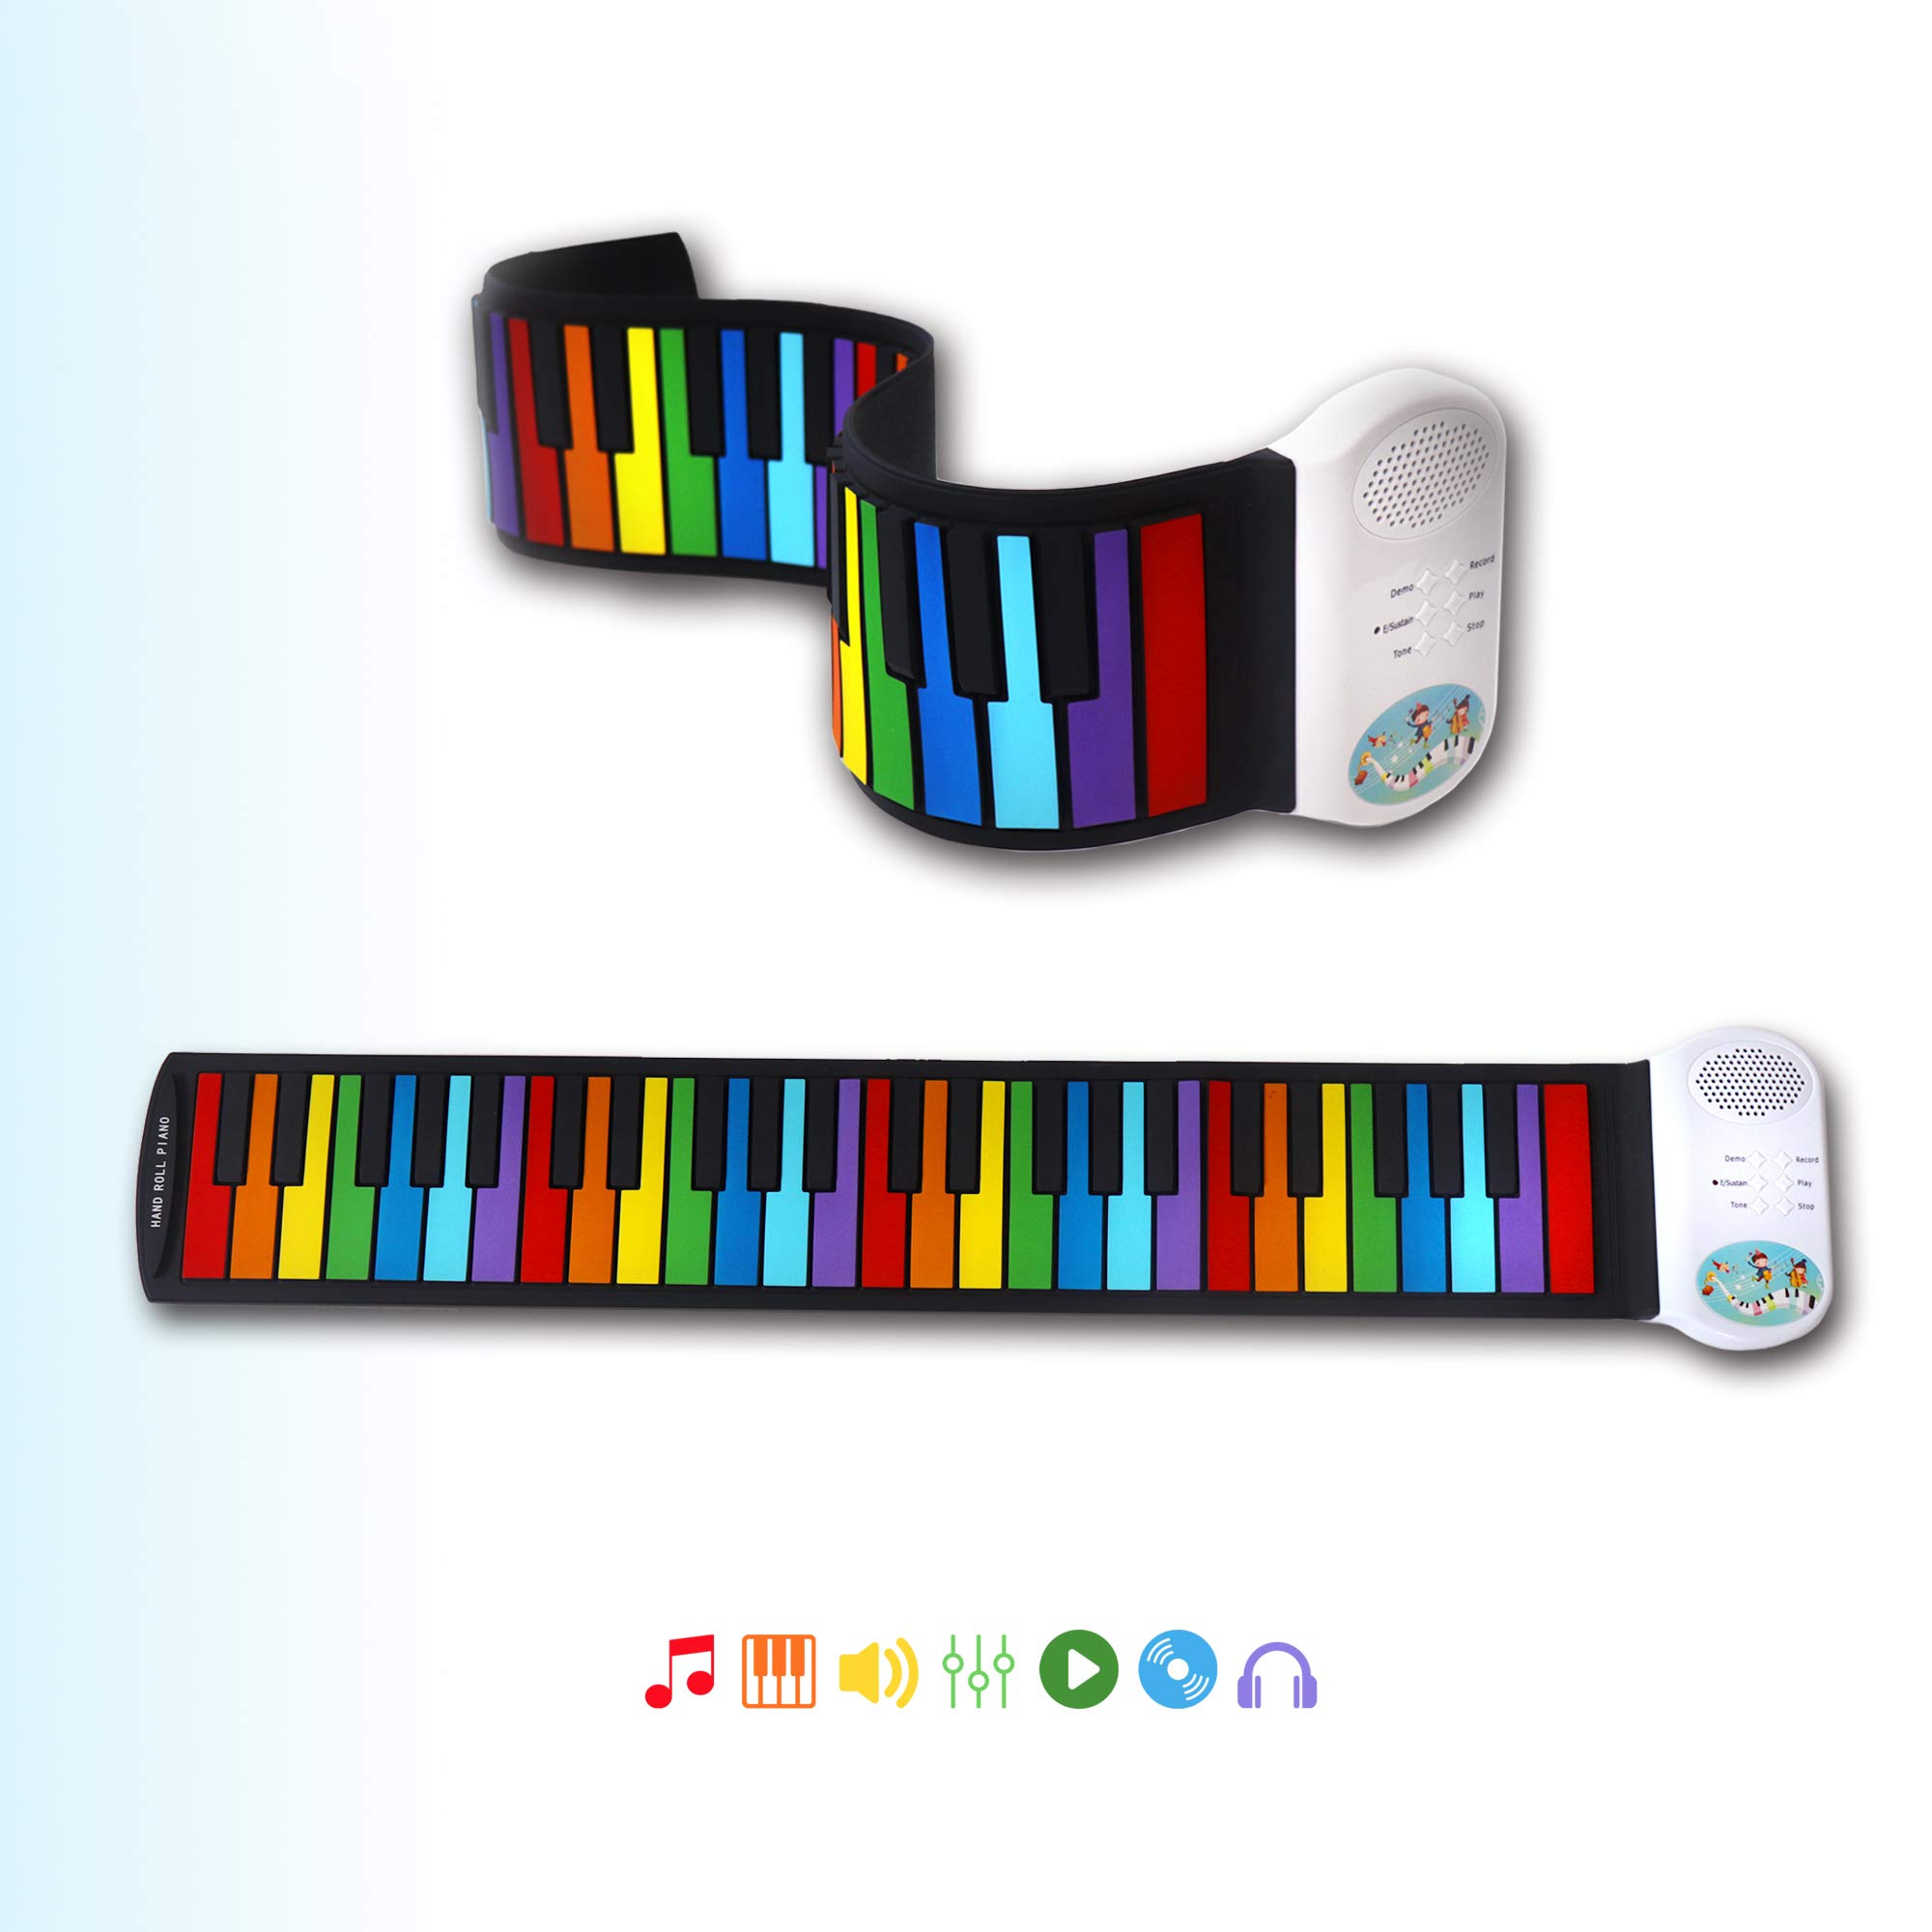 iPro Roll Up Piano,Upgraded Portable Rechargeable Electronic Hand Roll Piano with Silicone Piano Keyboard for kids (49 keys)